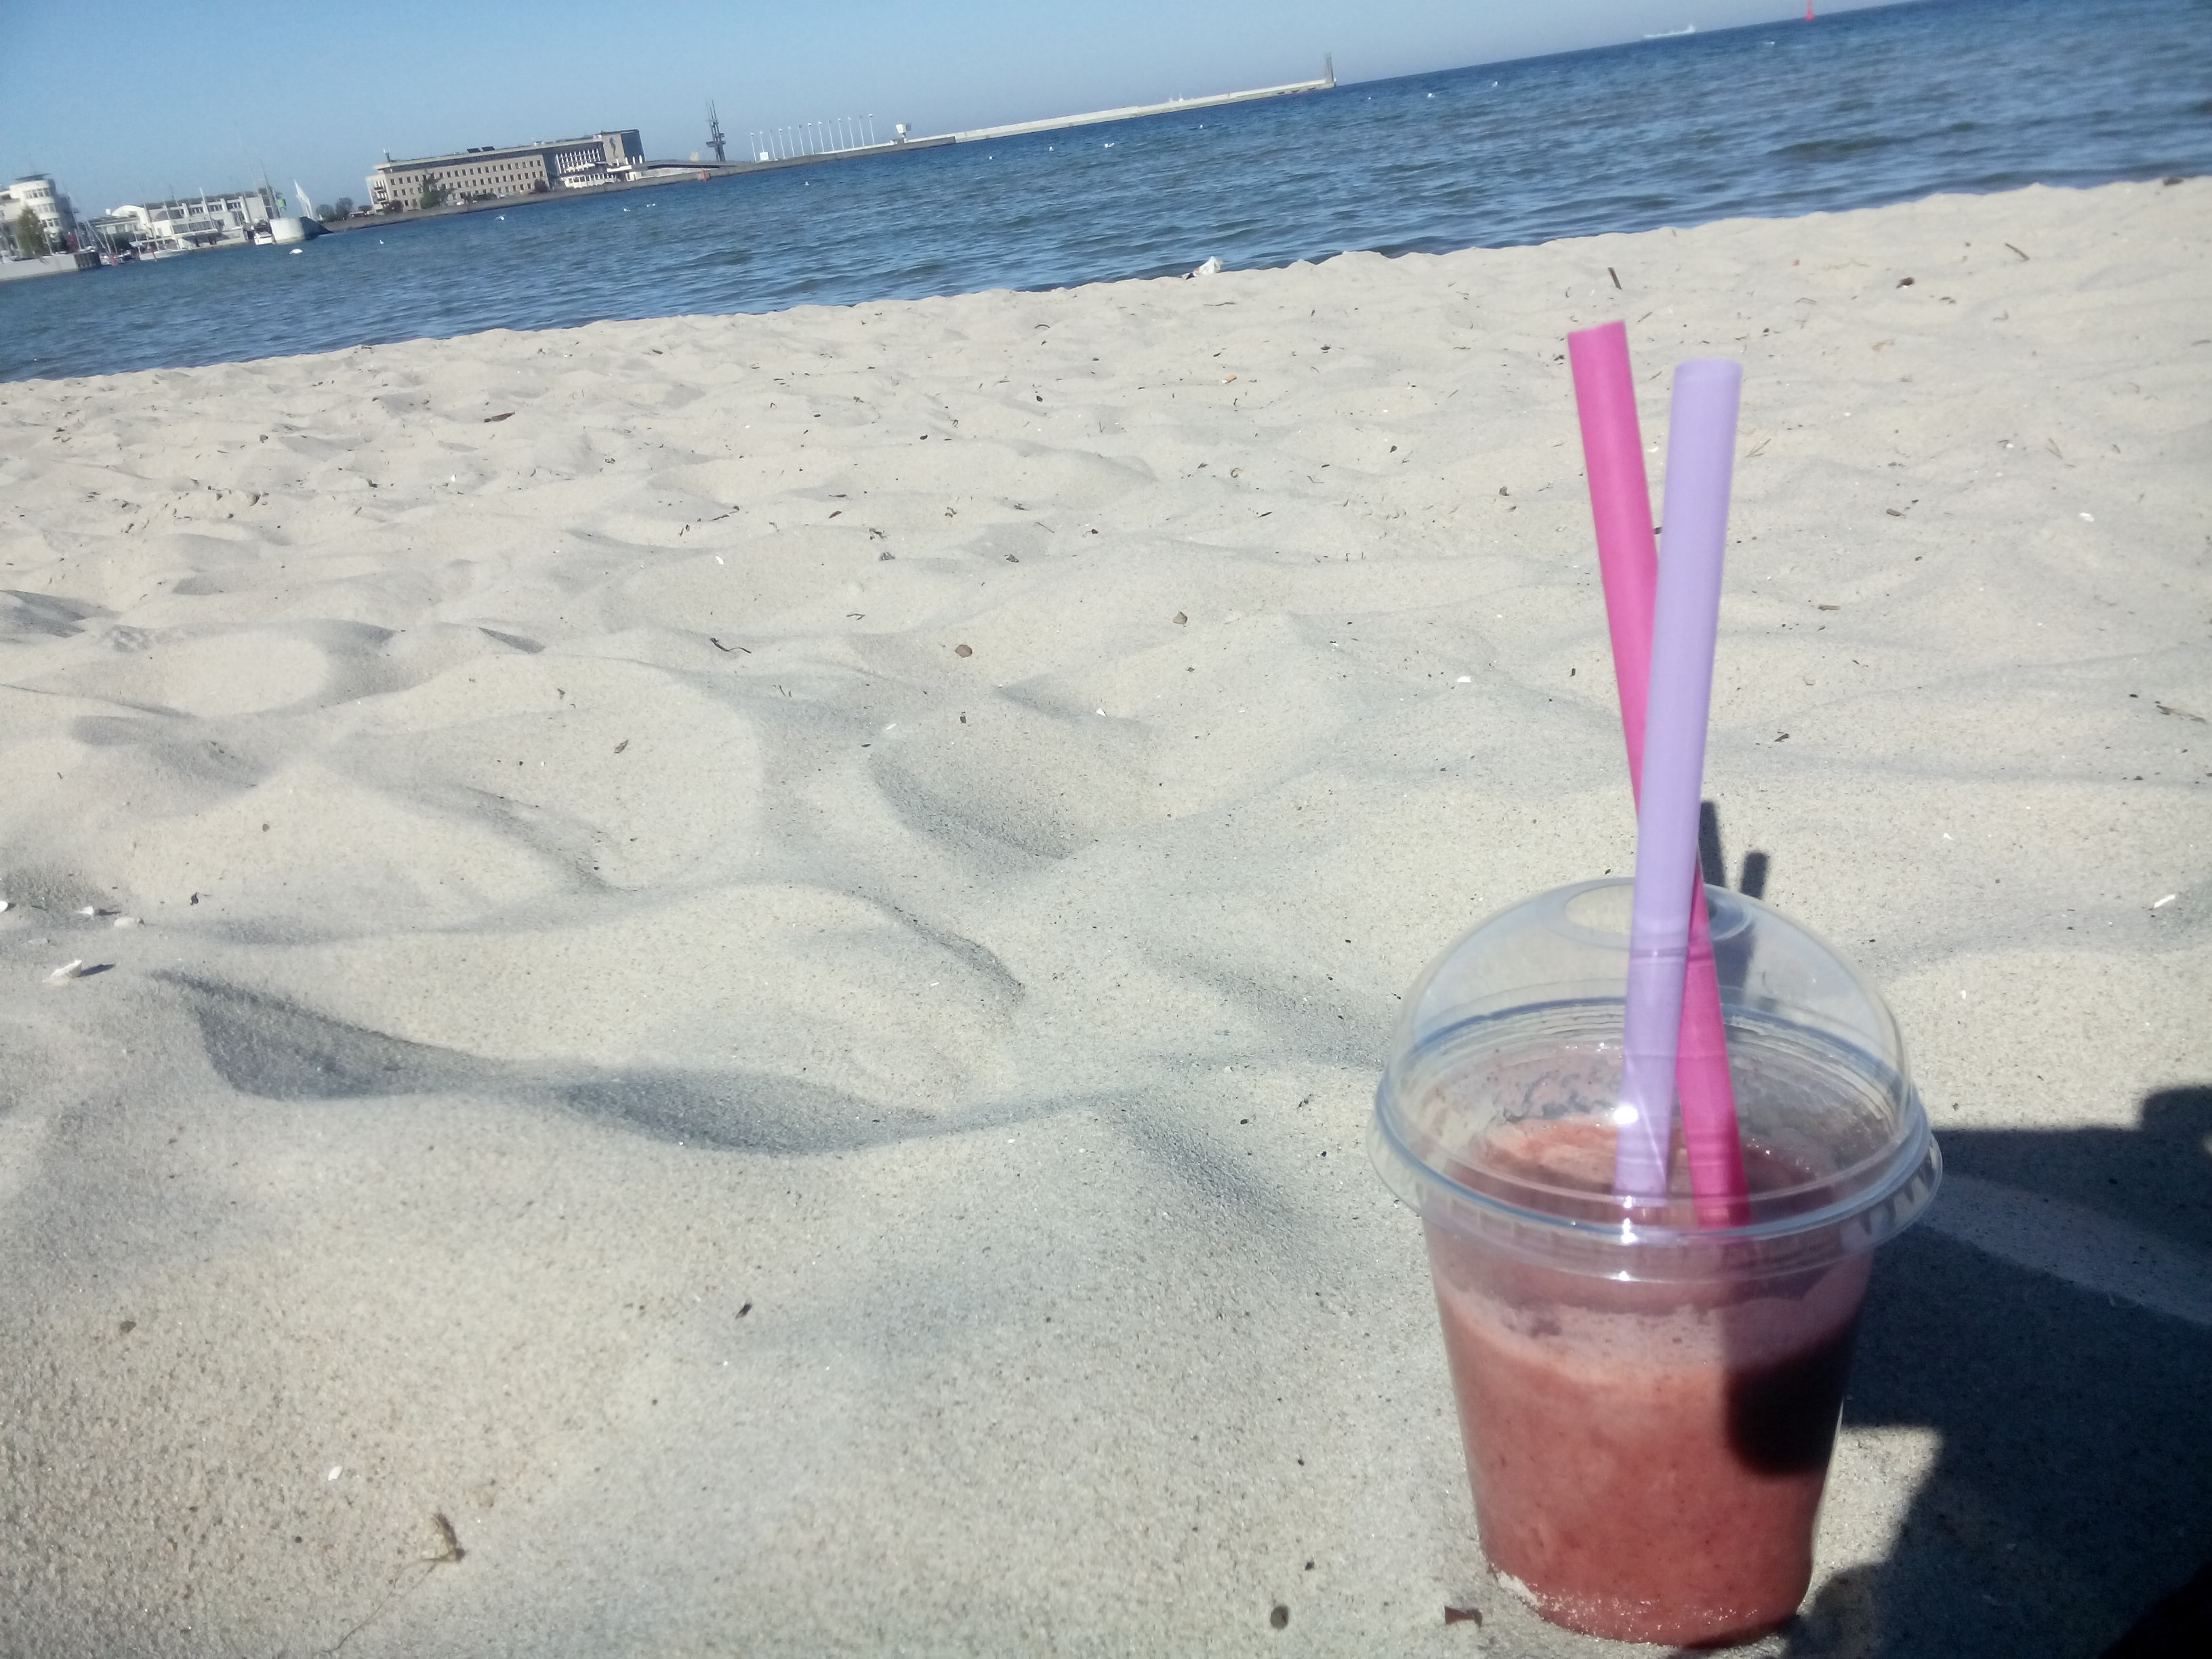 A pink smoothie with two straws nestled in beach sand, with the sea and blue sky in the distance